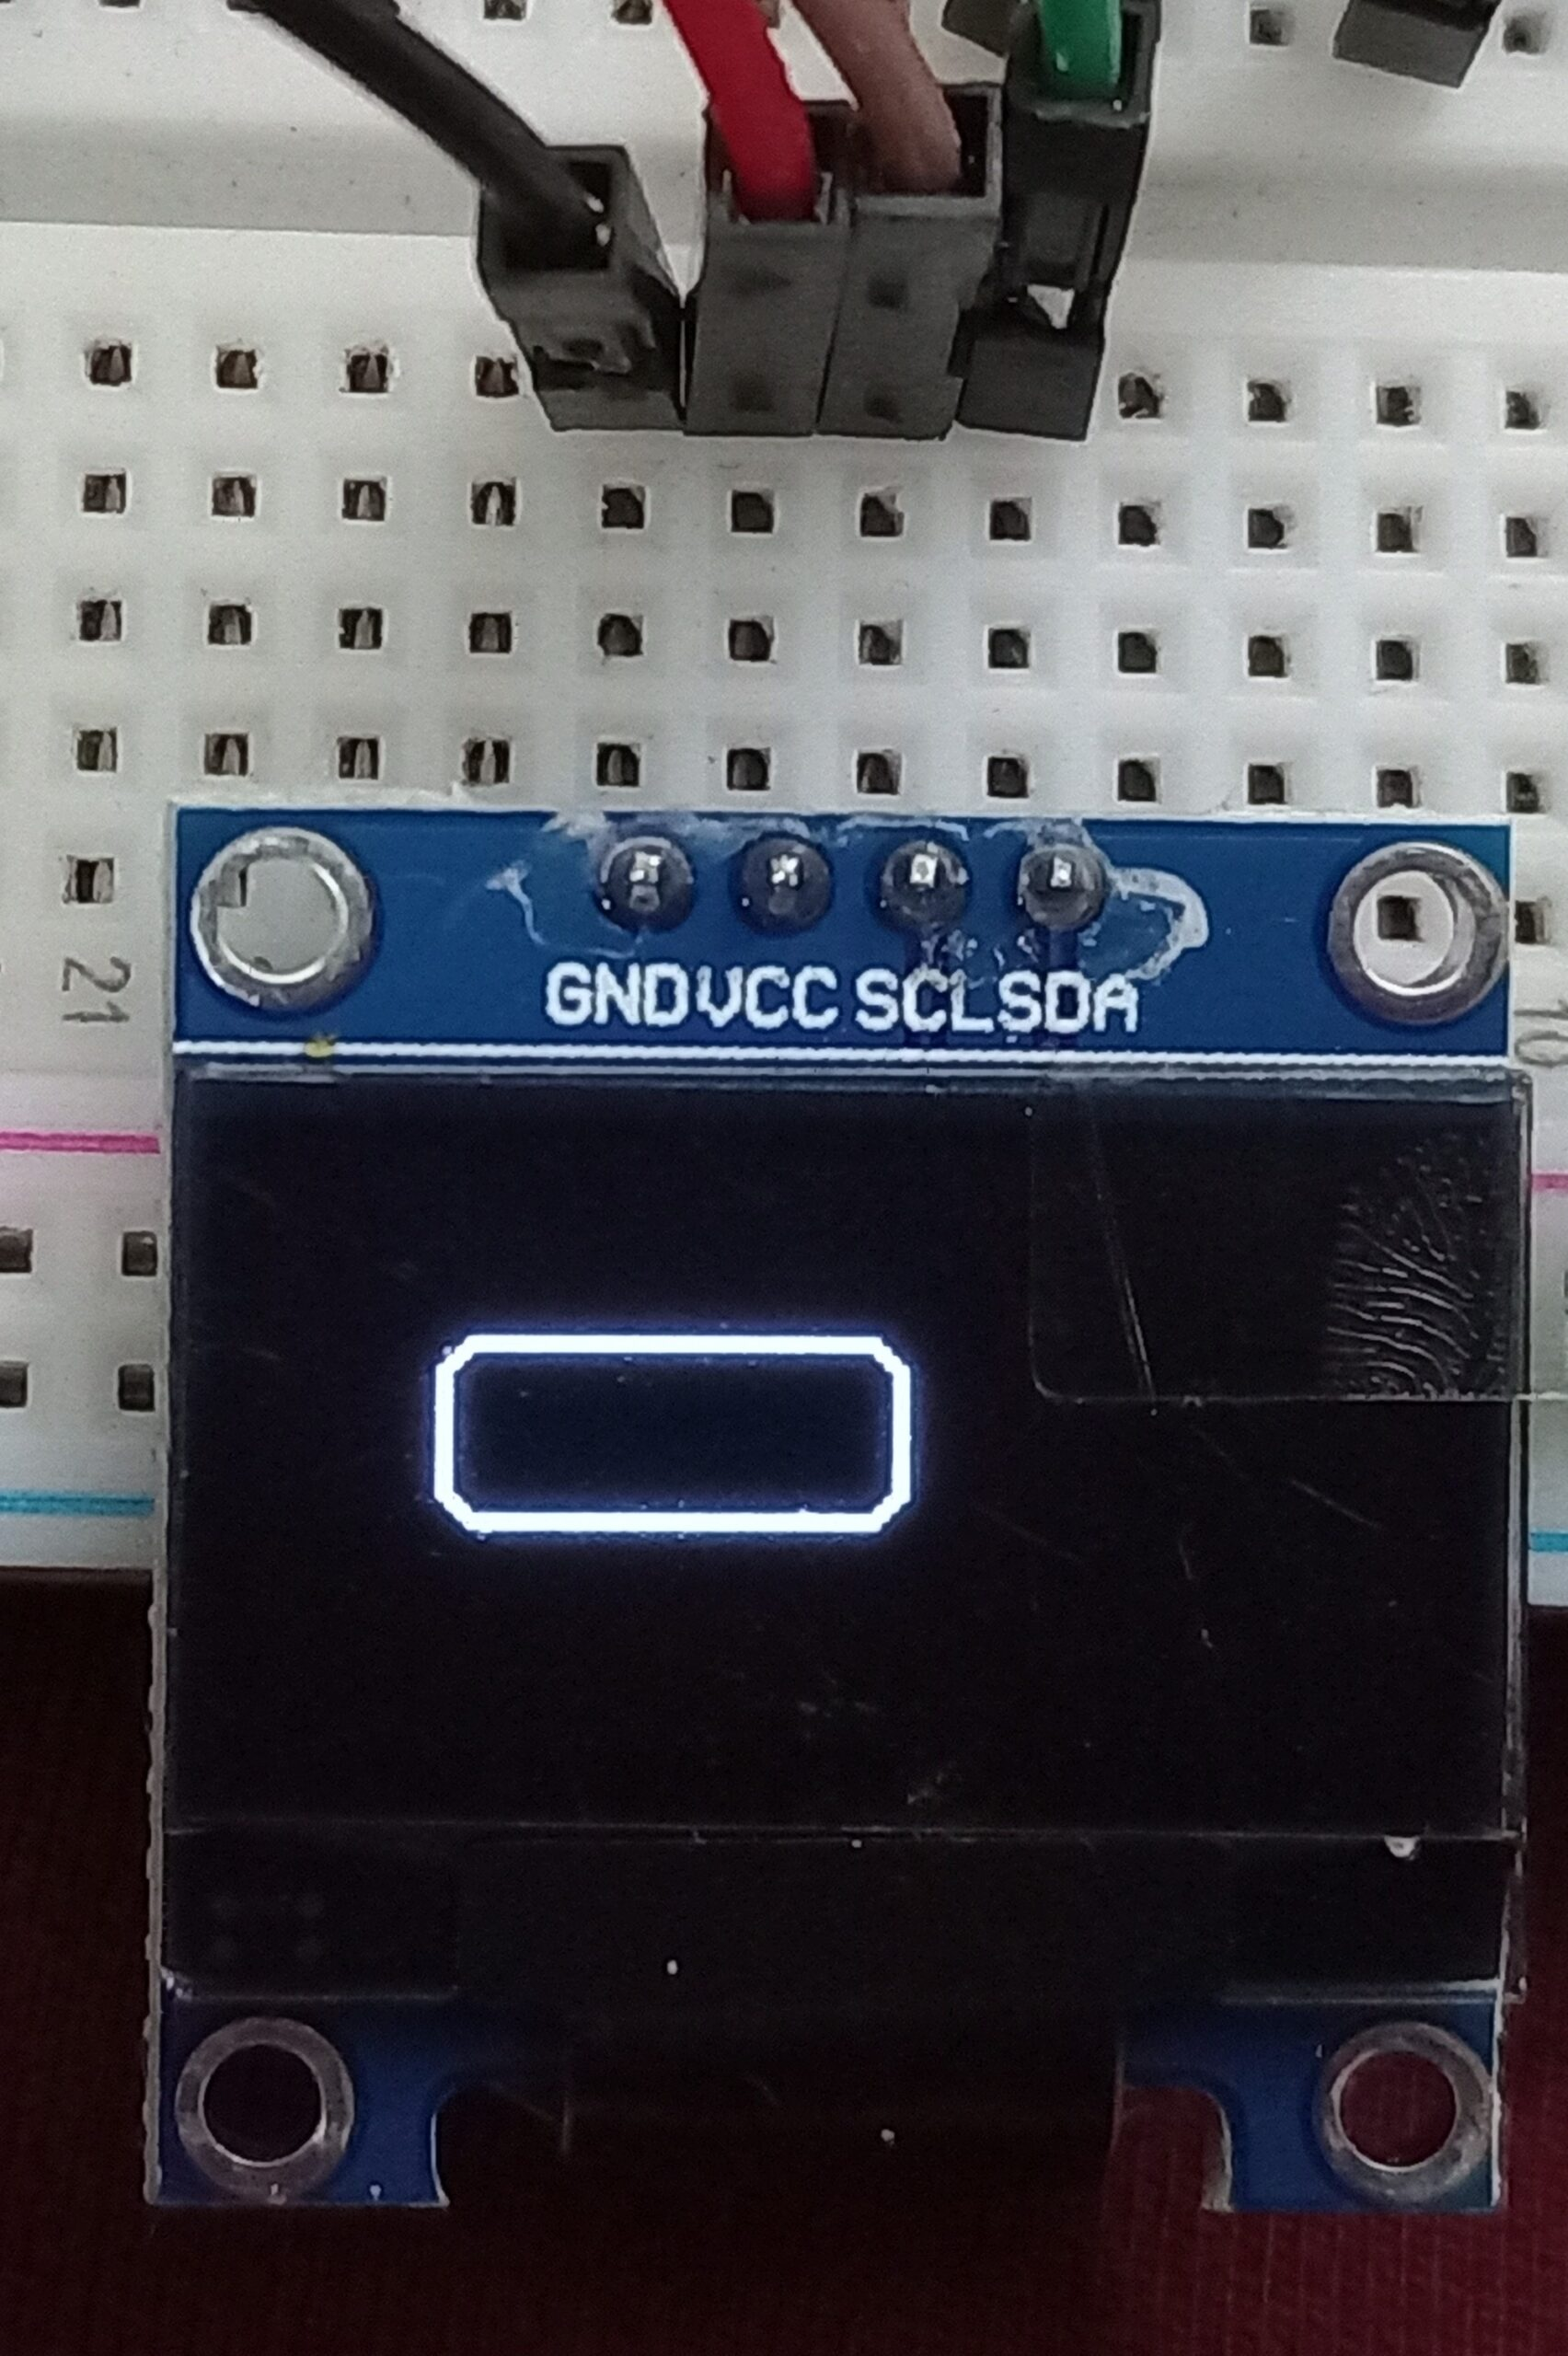 OLED display rounded rectangle